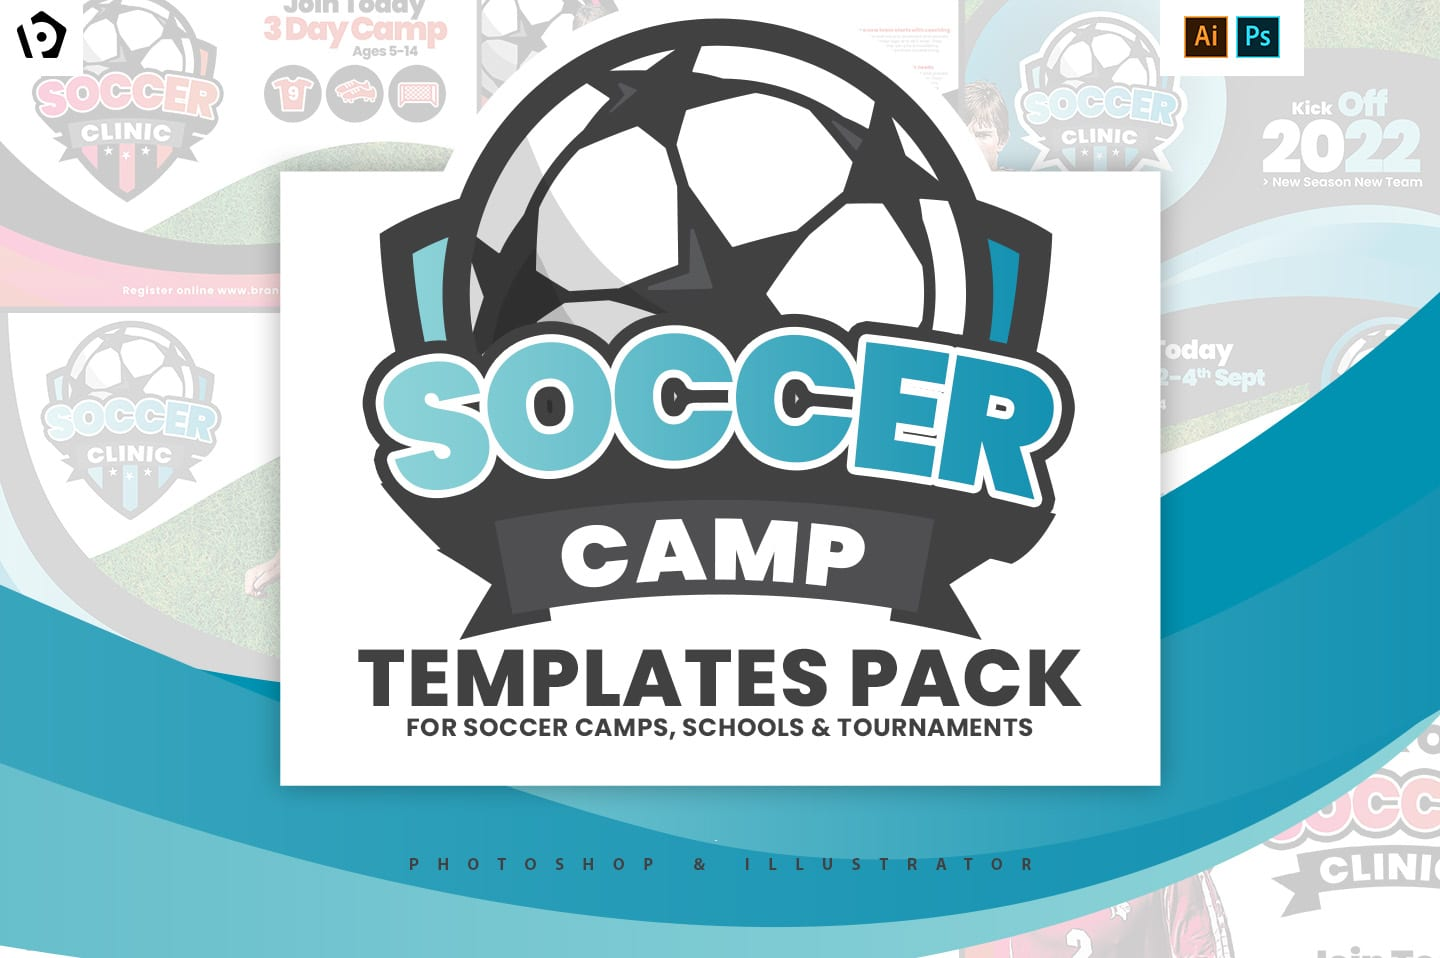 Soccer Camp Templates Pack